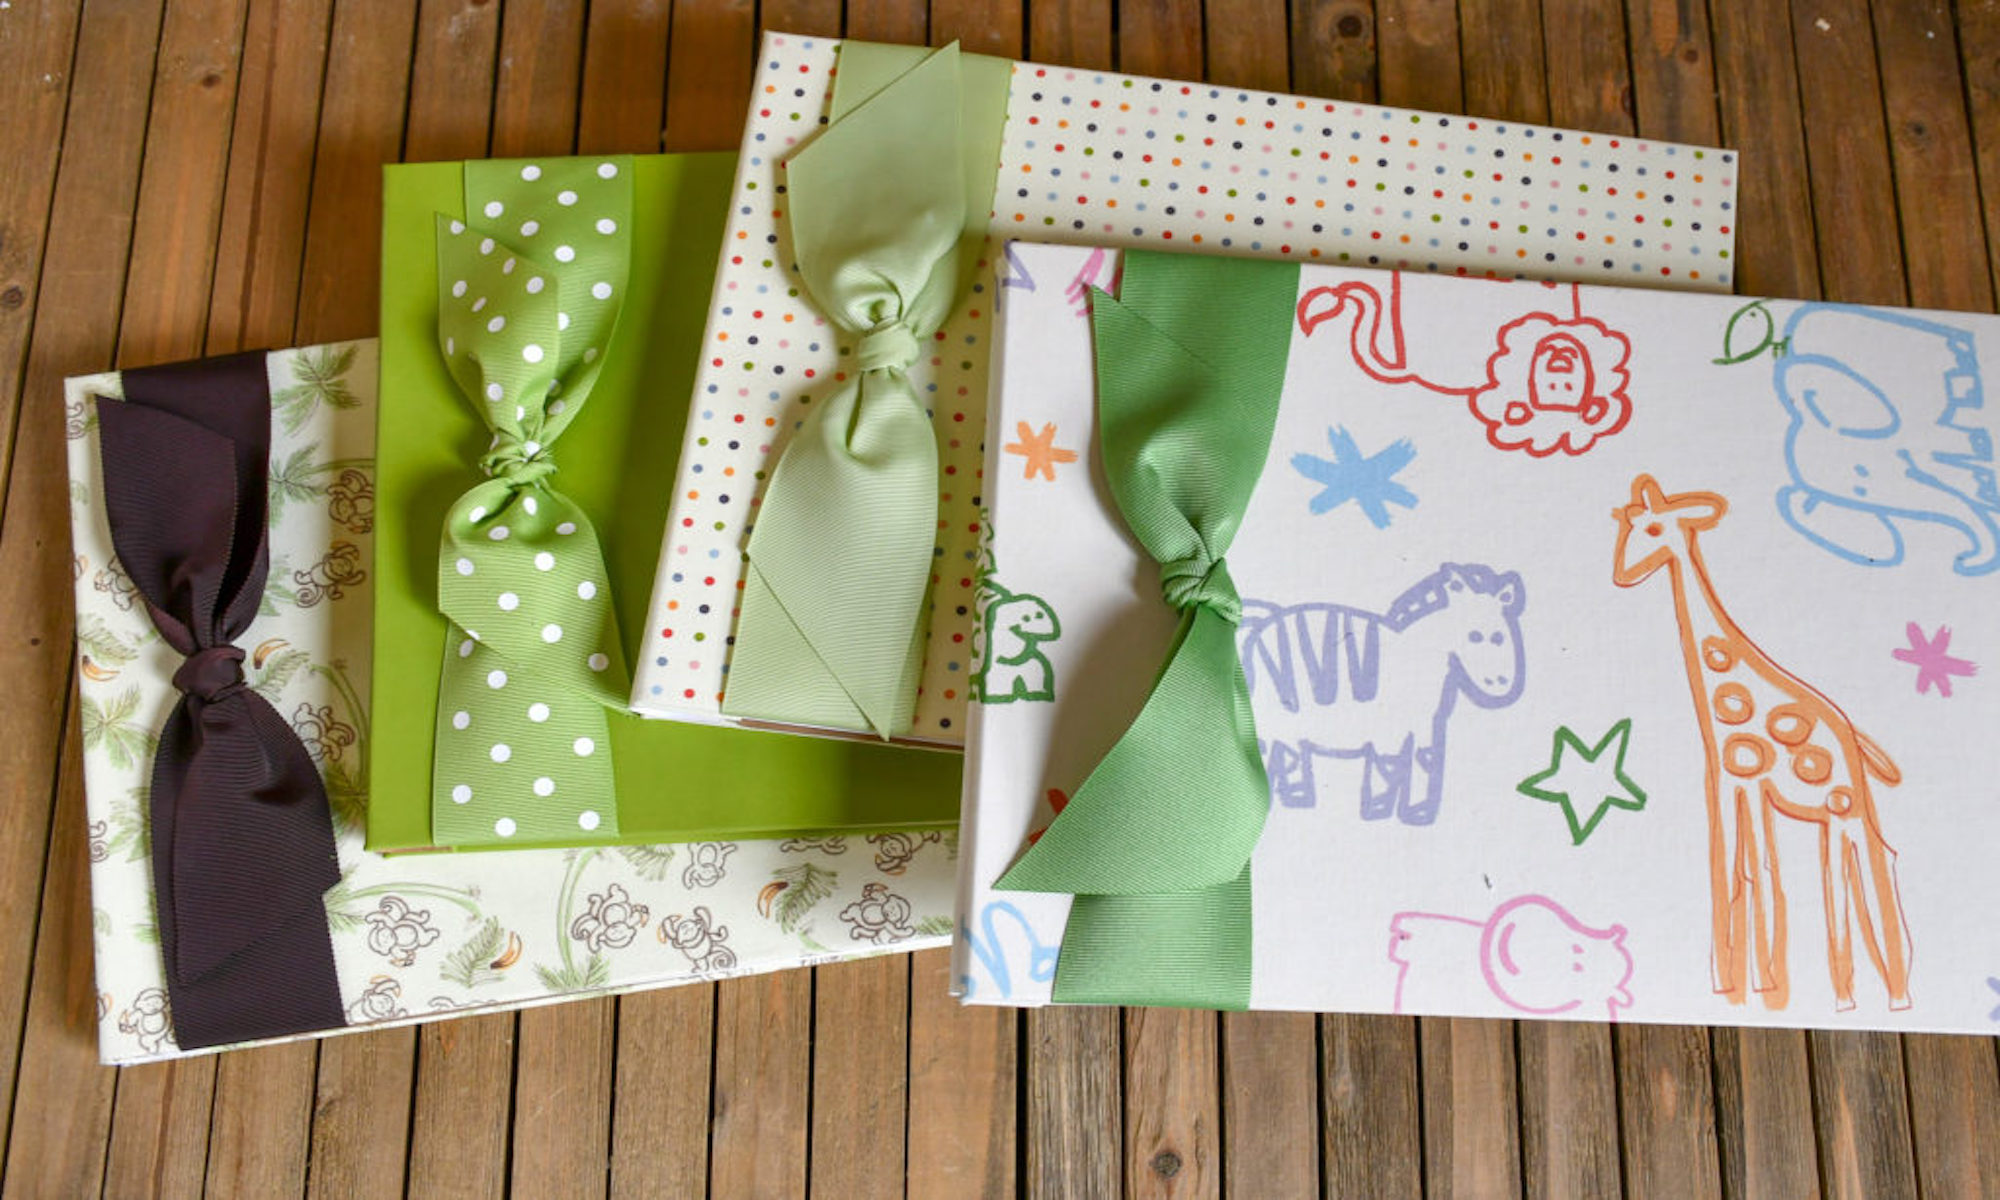 Baby Memory Books with ribbons on wooden background